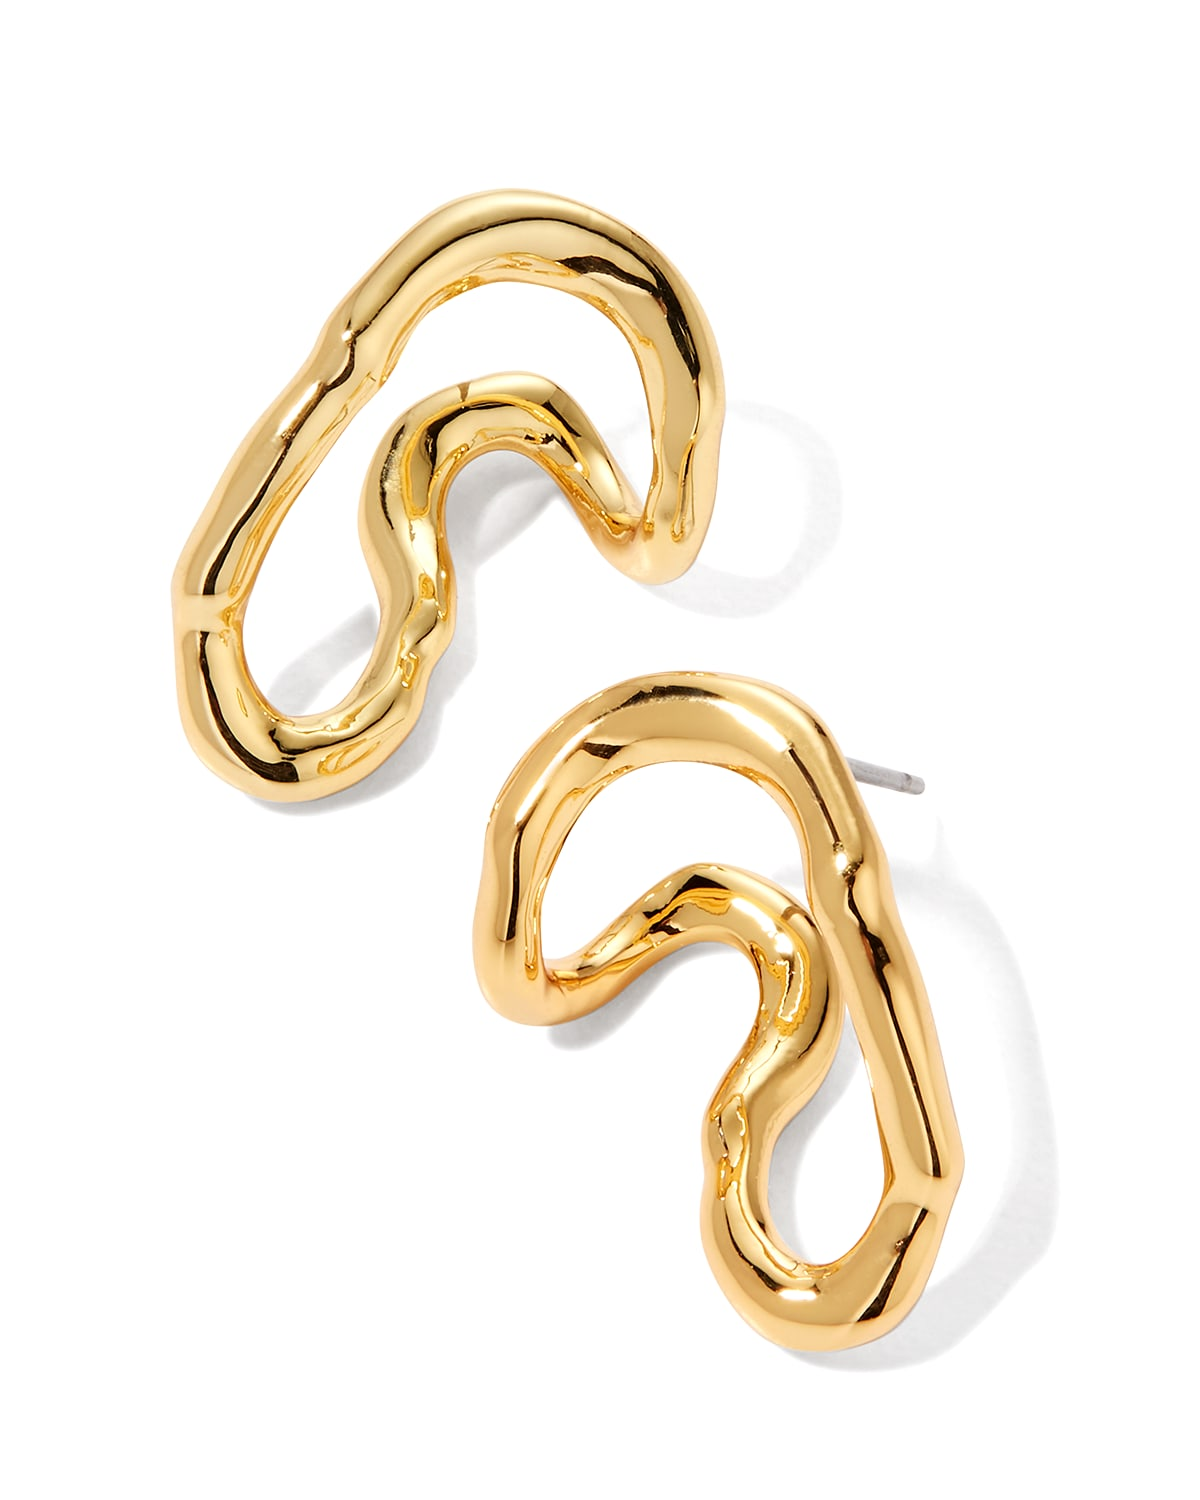 Twisted Gold Wrap Around Stud Earrings